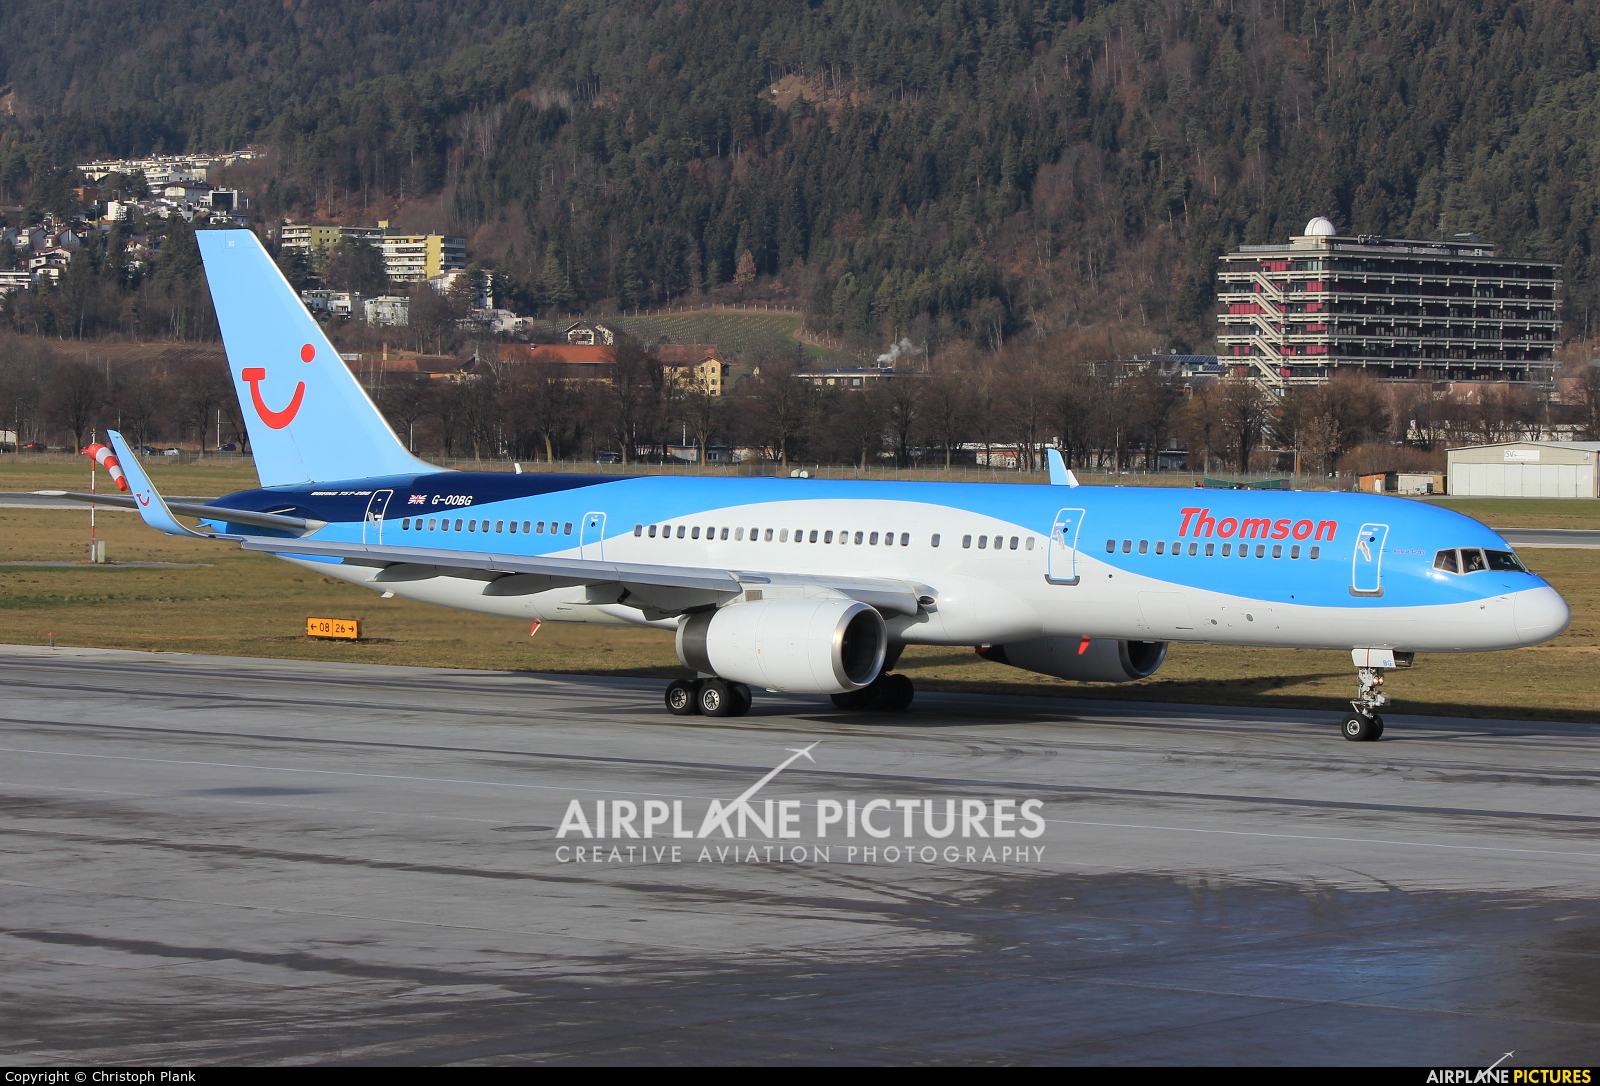 Thomson/Thomsonfly G-OOBG aircraft at Innsbruck